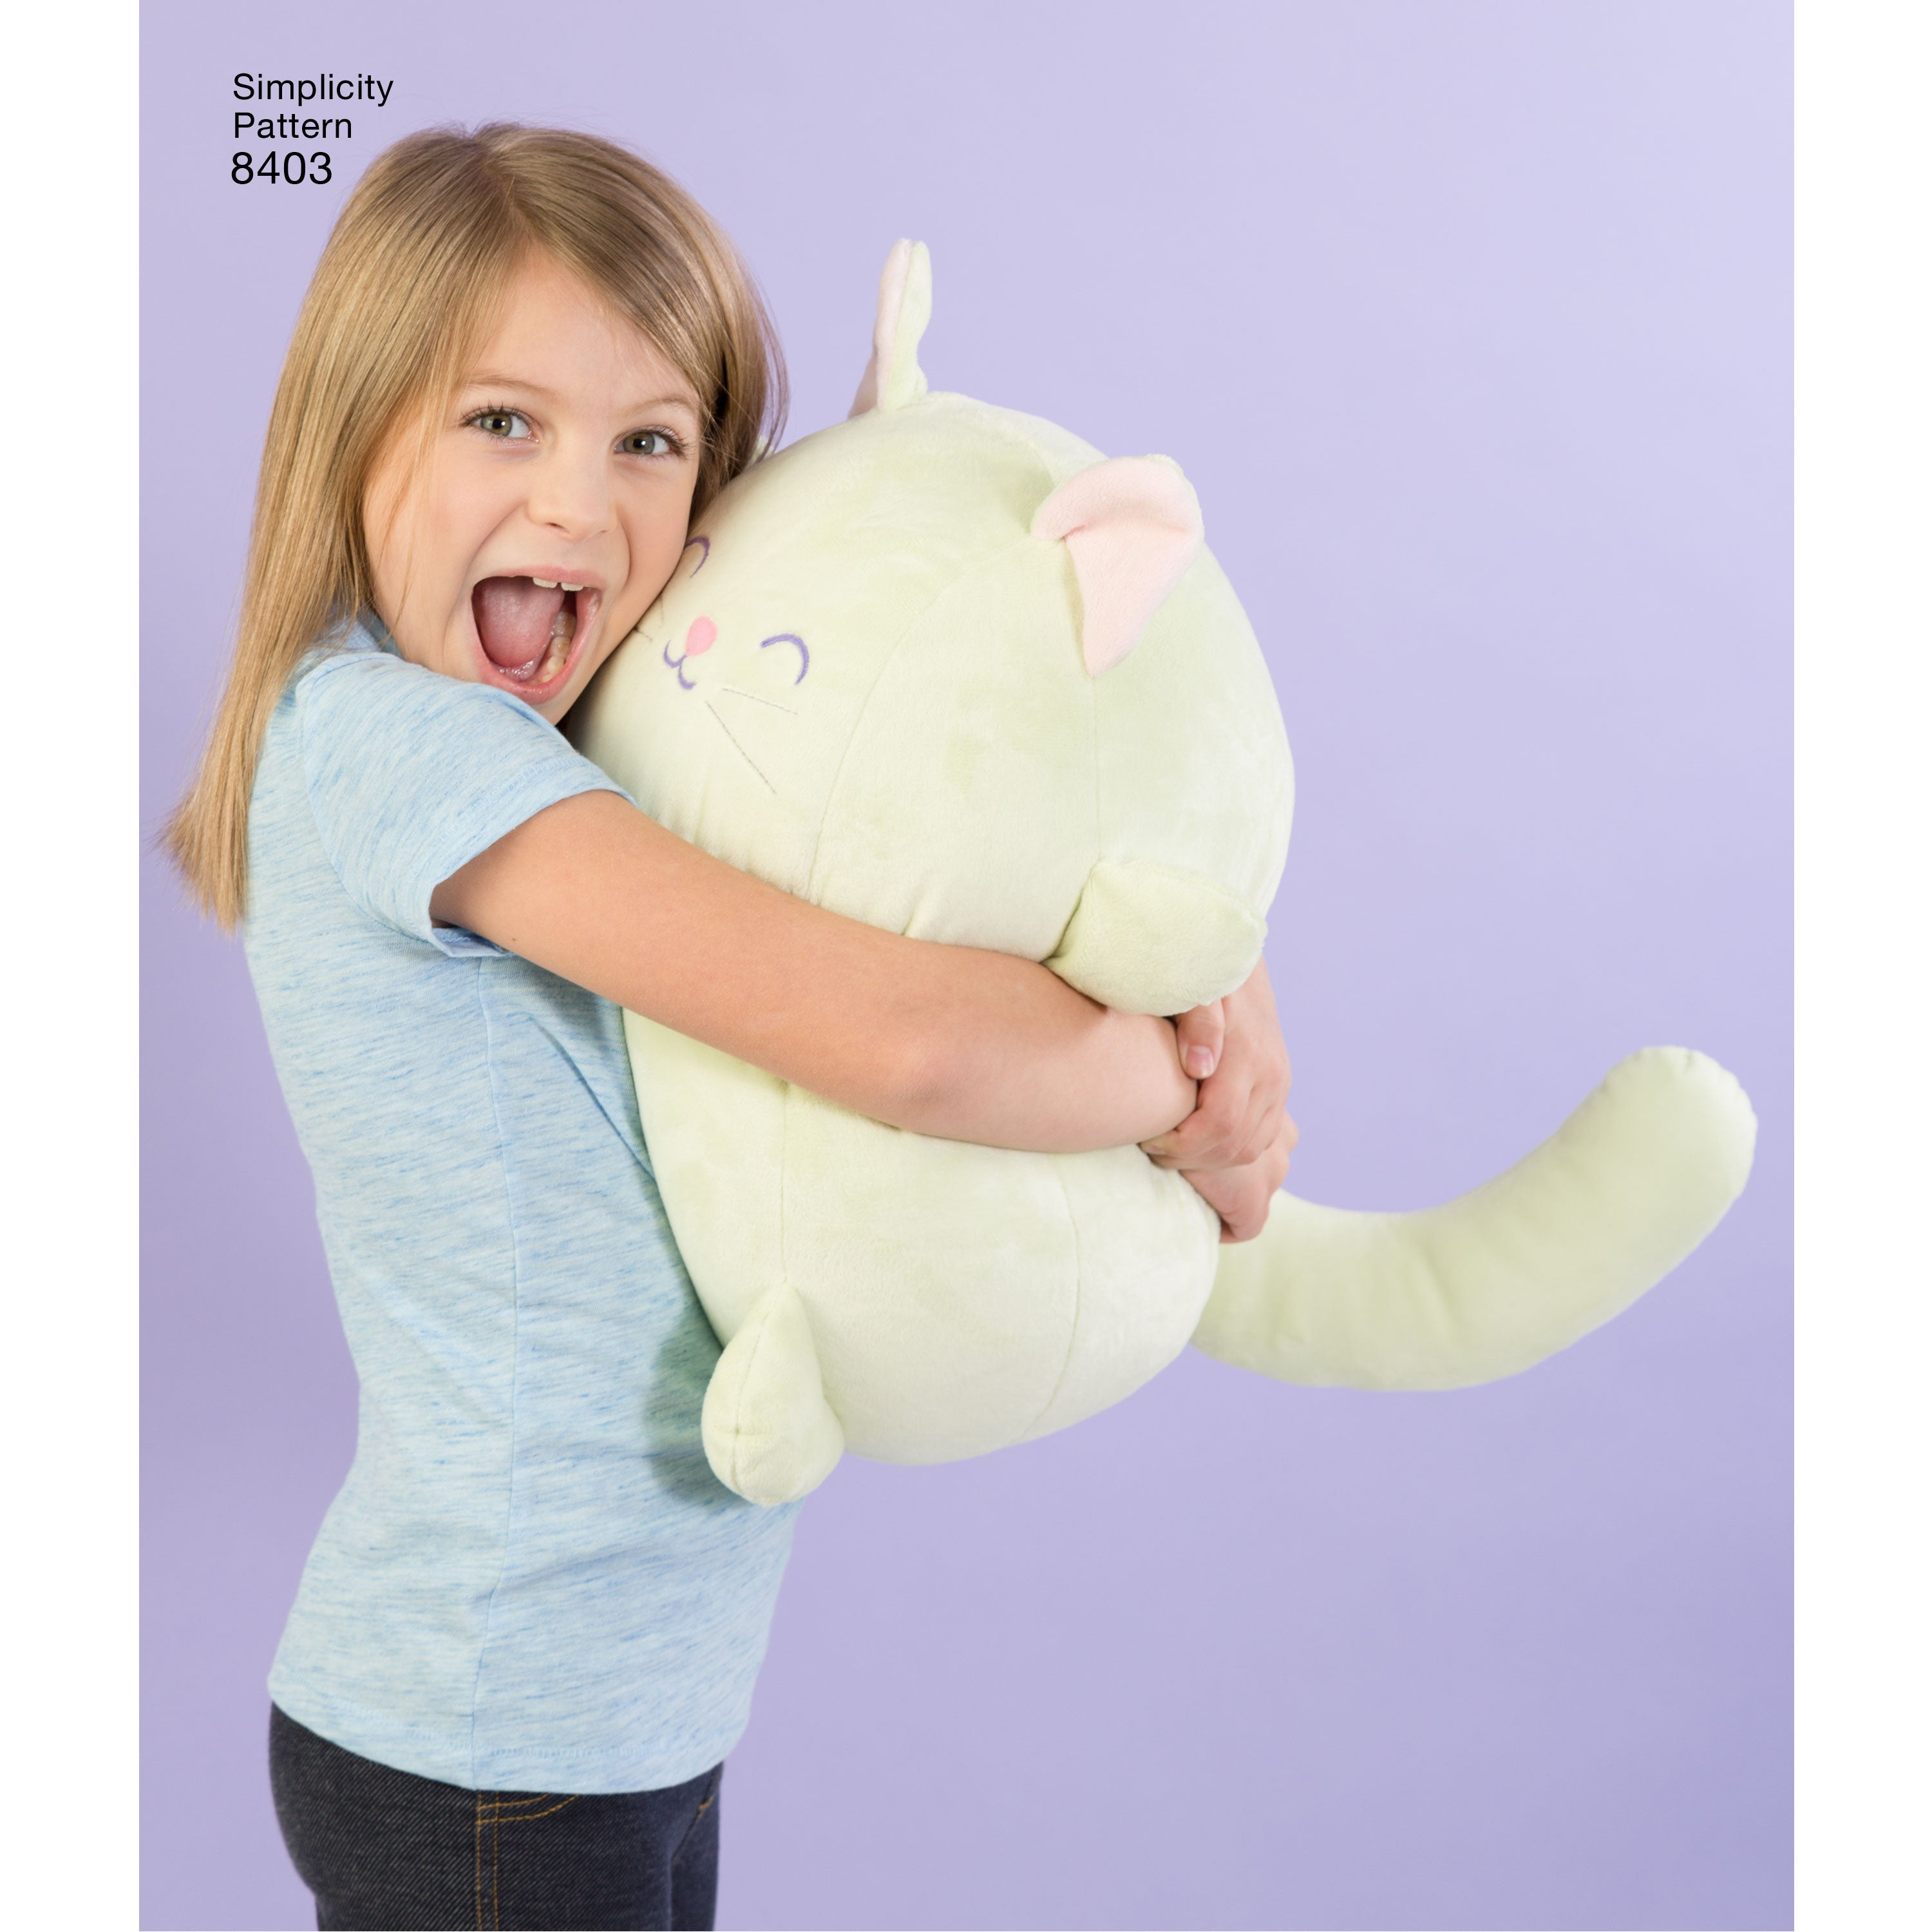 big hug time - this toy cat is just too cute !